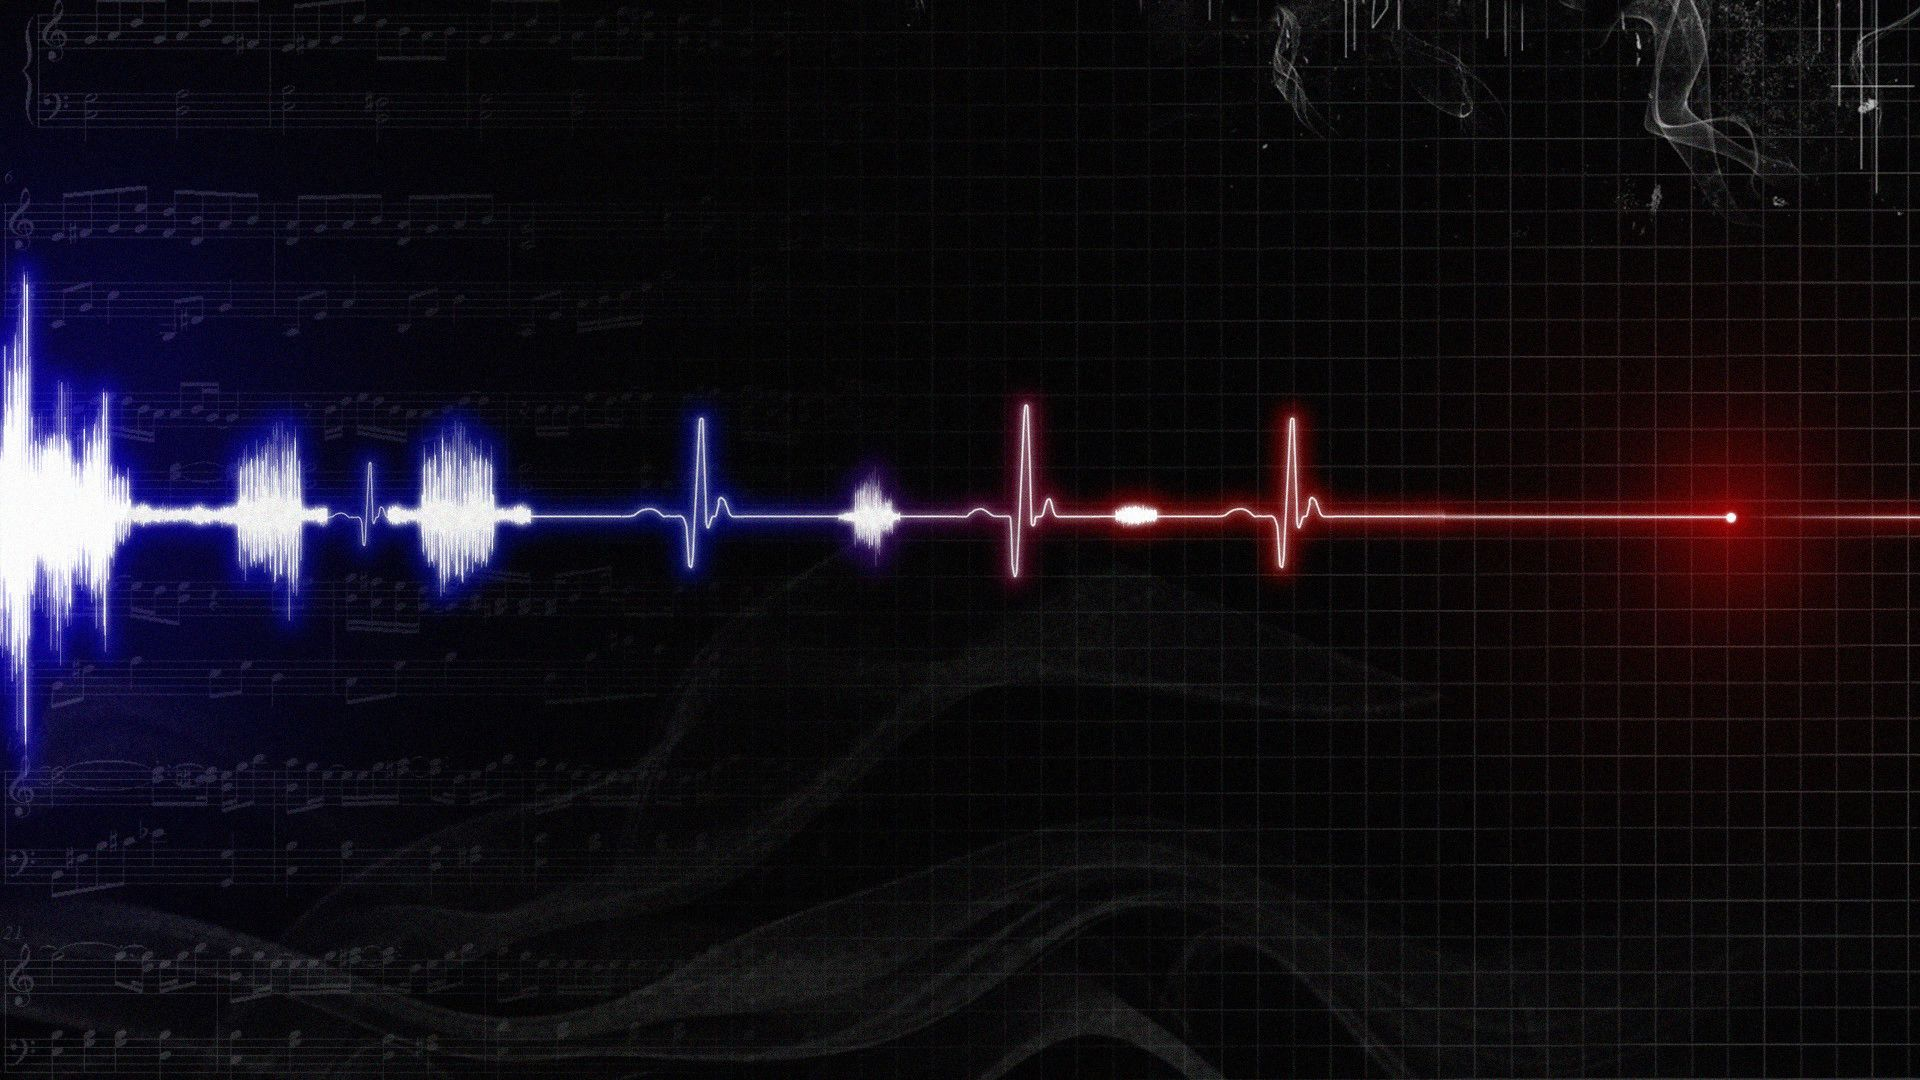 Hd 3d Wallpapers For Pc Full Screen Free Download Sound Wave Hd Wallpapers Pixelstalk Net